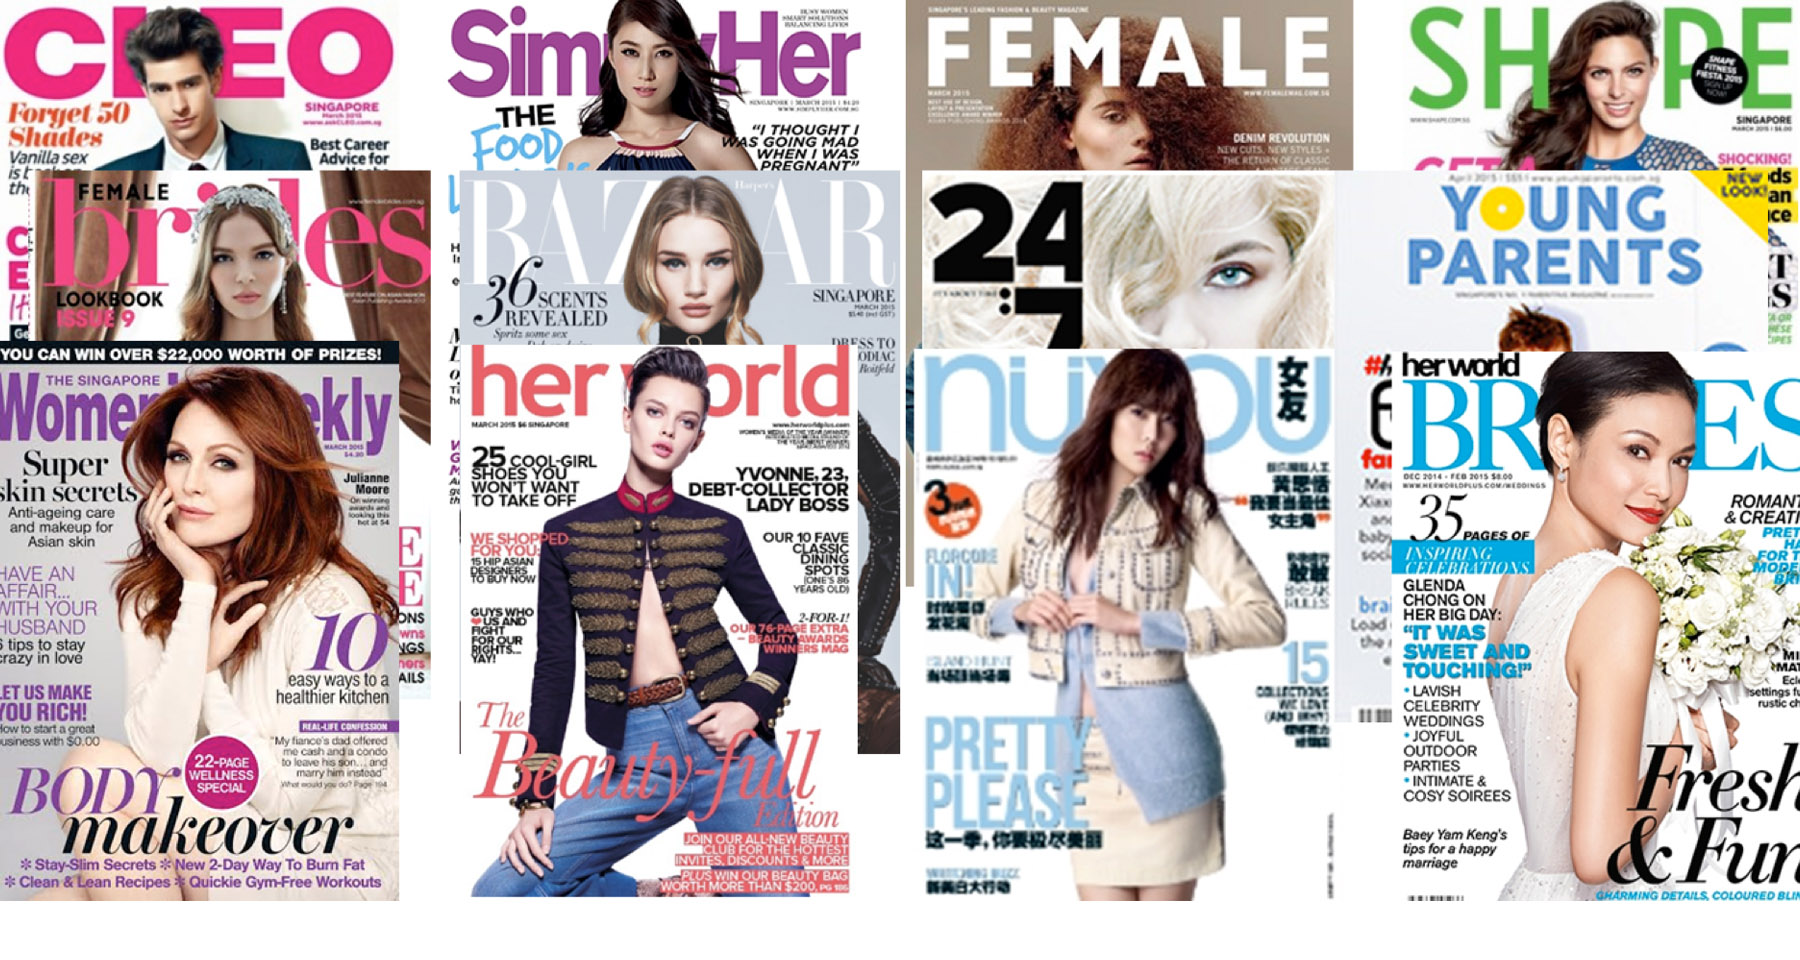 Audience research helps SPH Magazines compete for multi-media advertising